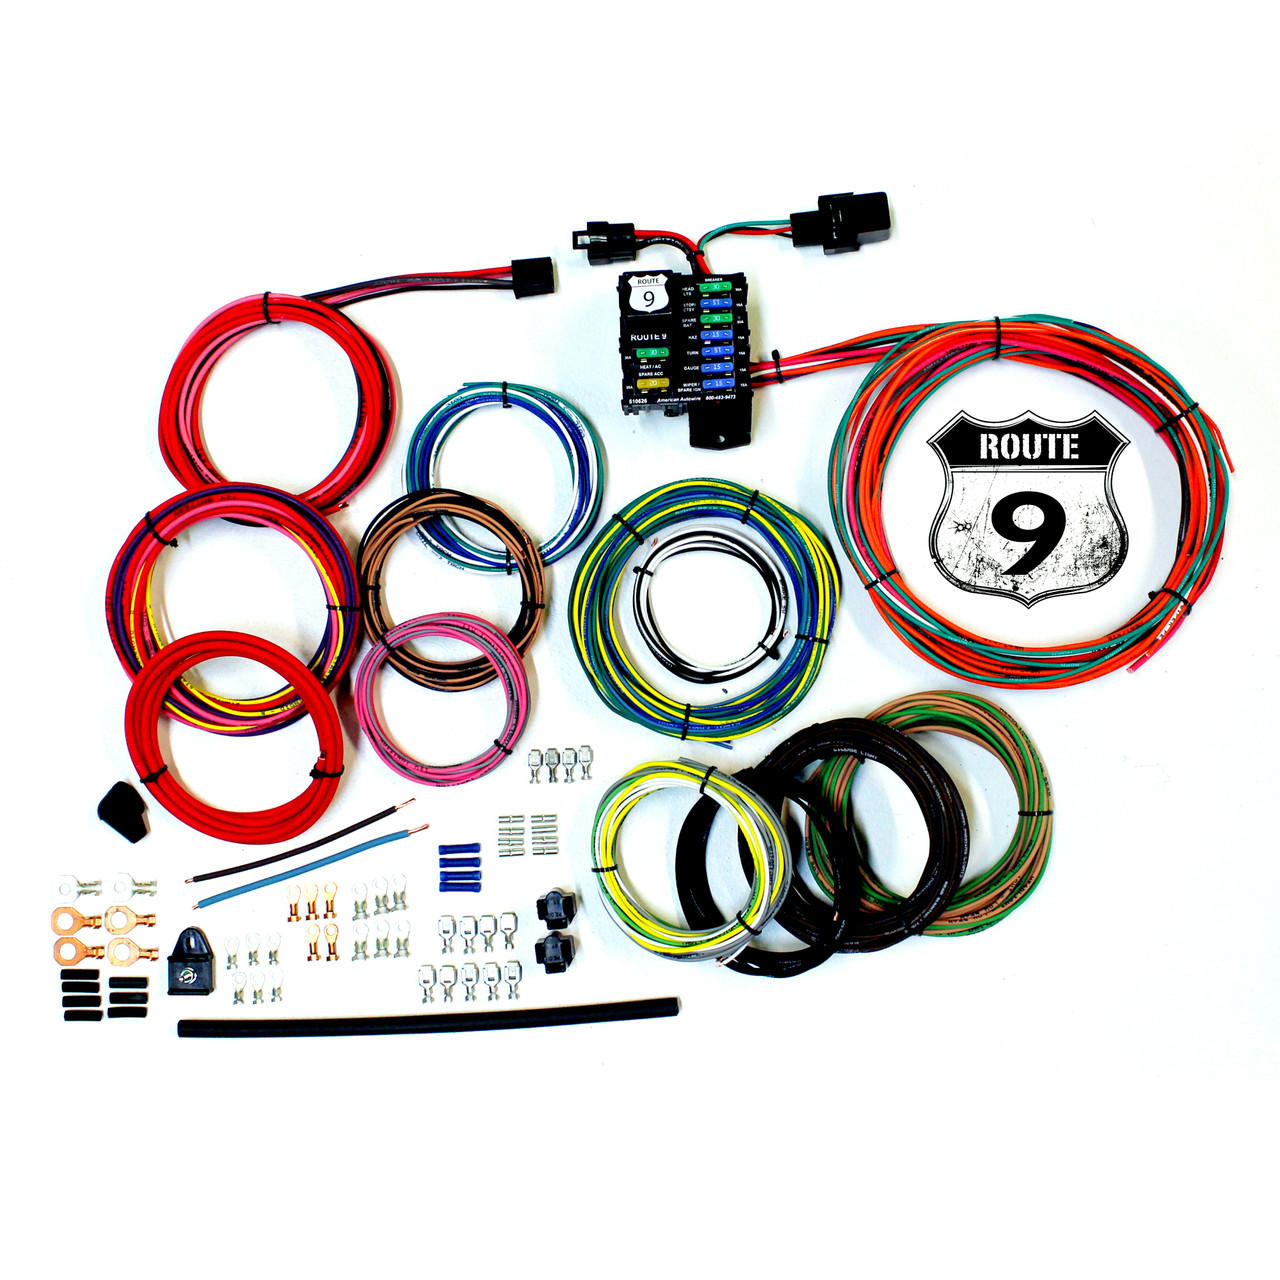 american autowire route 9 universal wiring kit so cal speed shop azamerican autowire route 9 universal wiring kit (ame 510625)